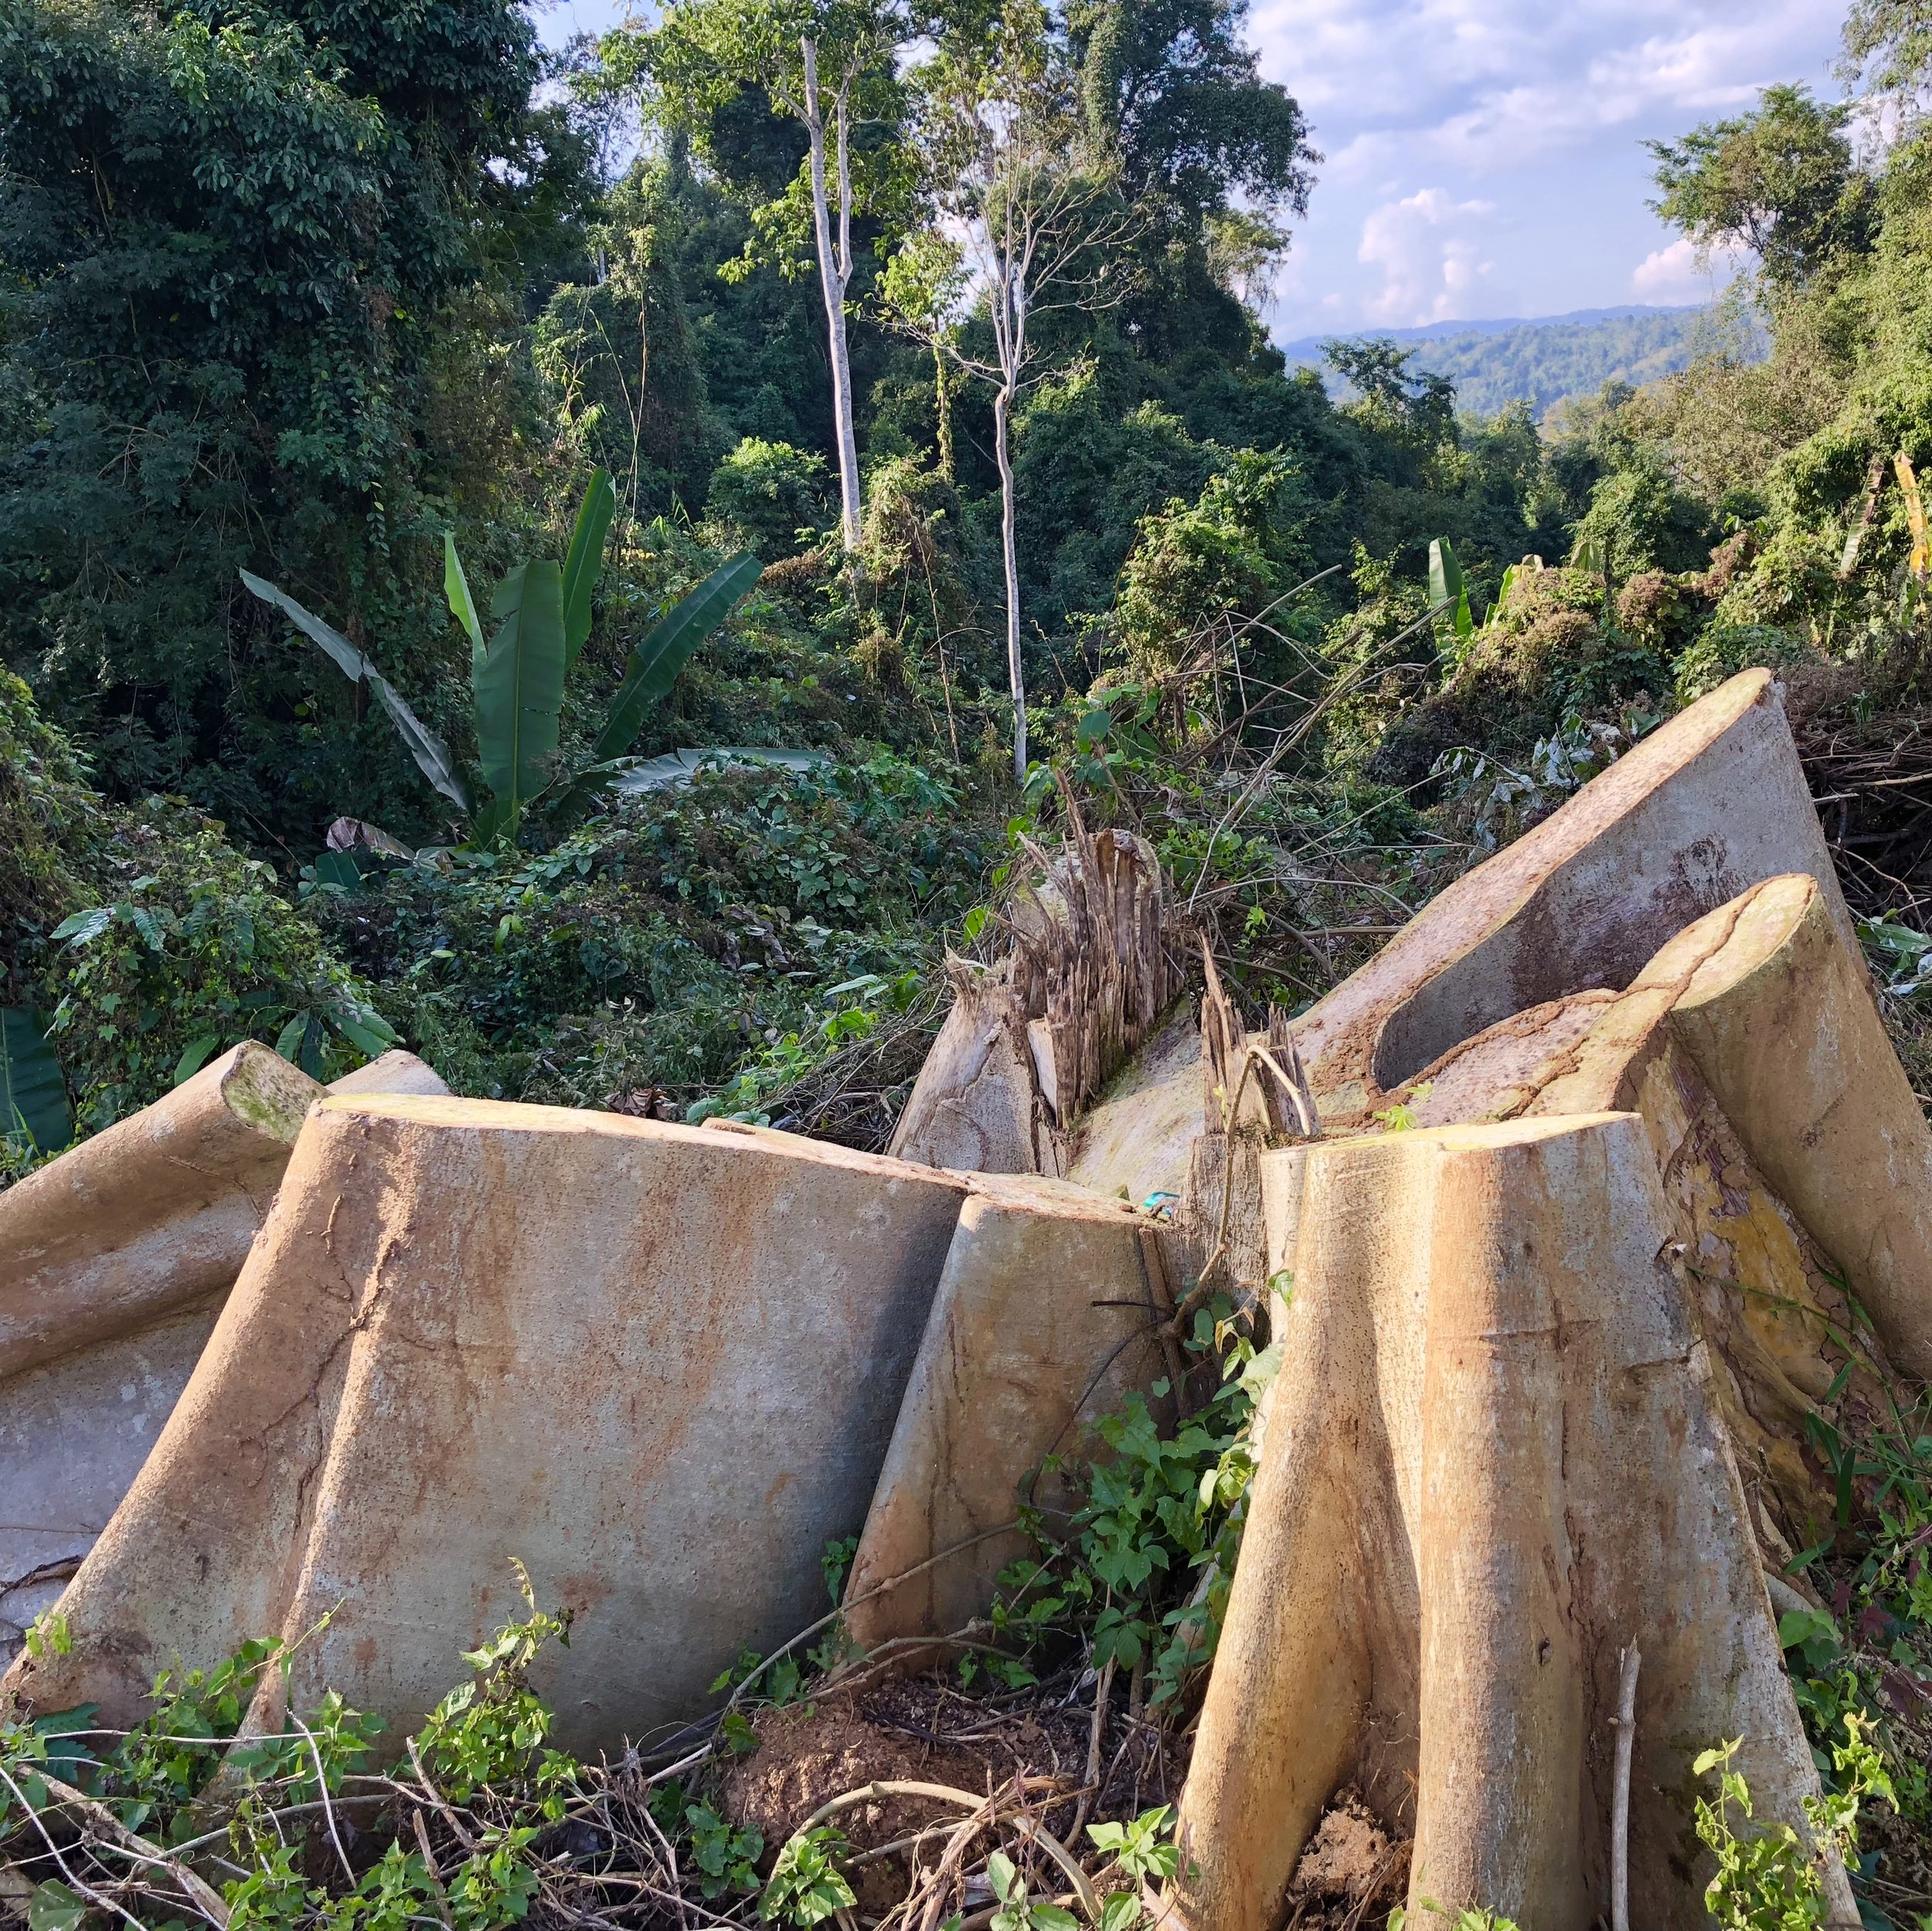 Environmental vandalism abounds within the Shwe Taung mountain forest